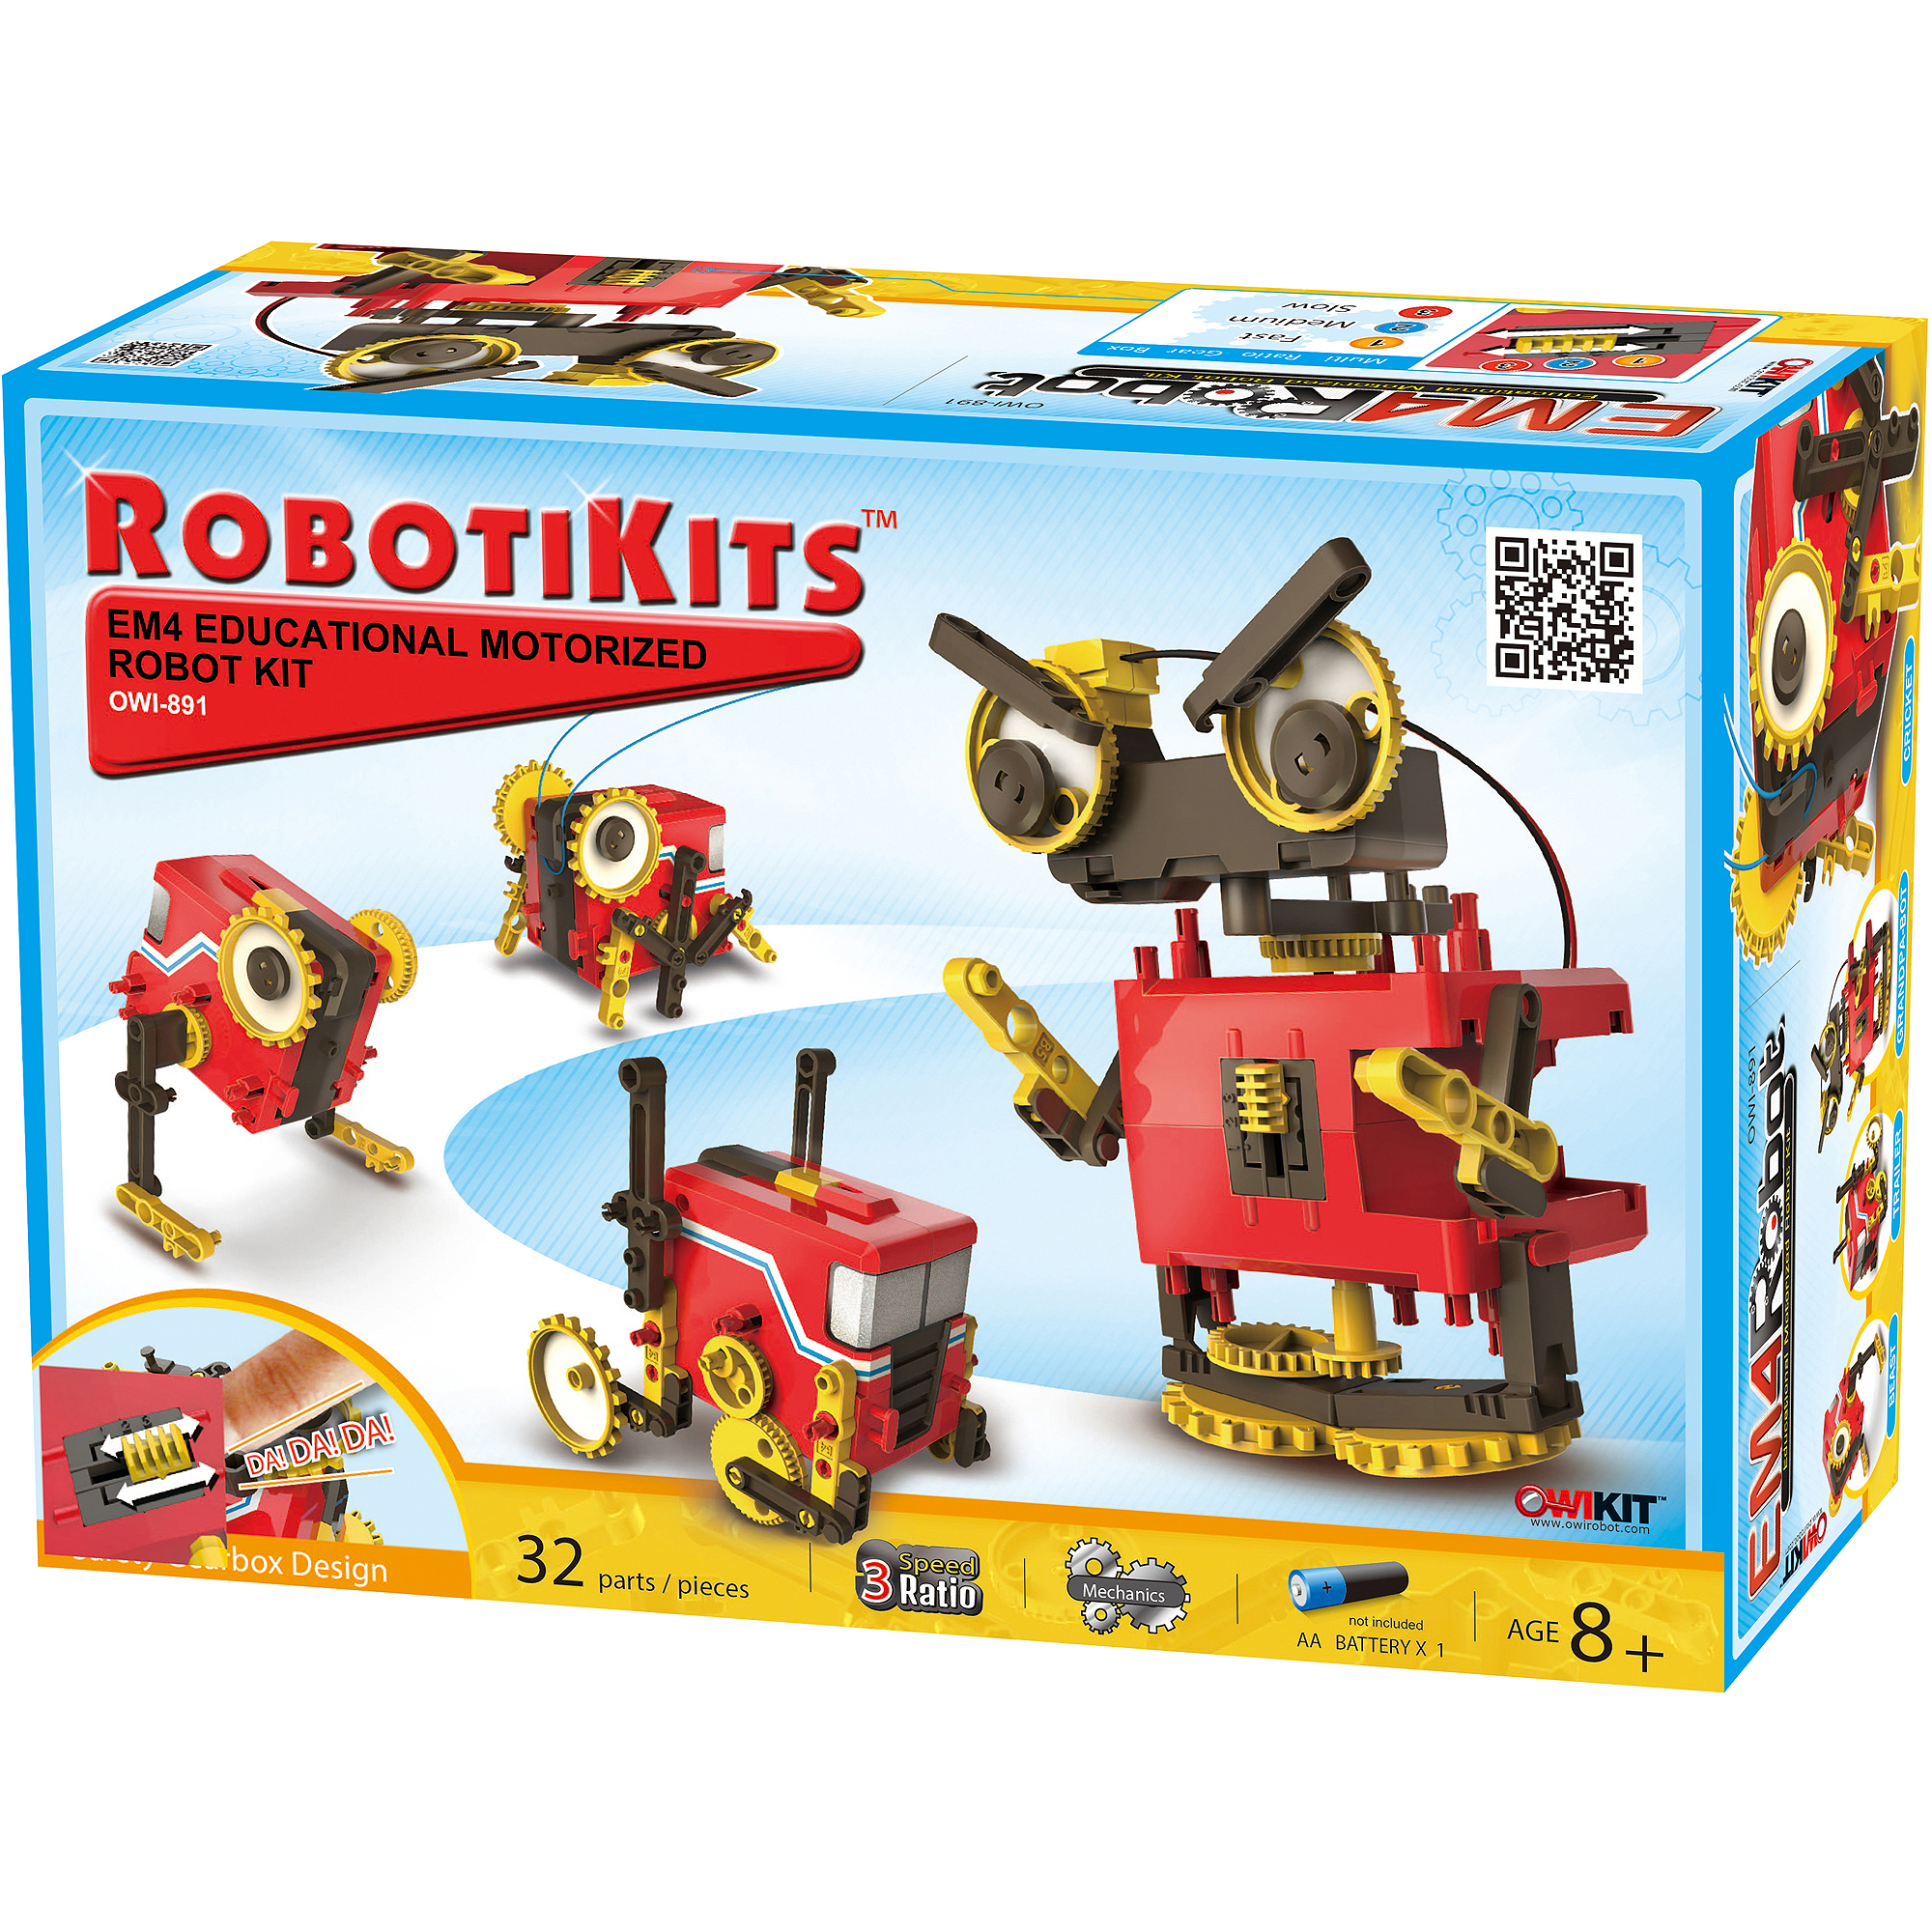 OWI EM4 Educational Motorized Robot Kit by Generic